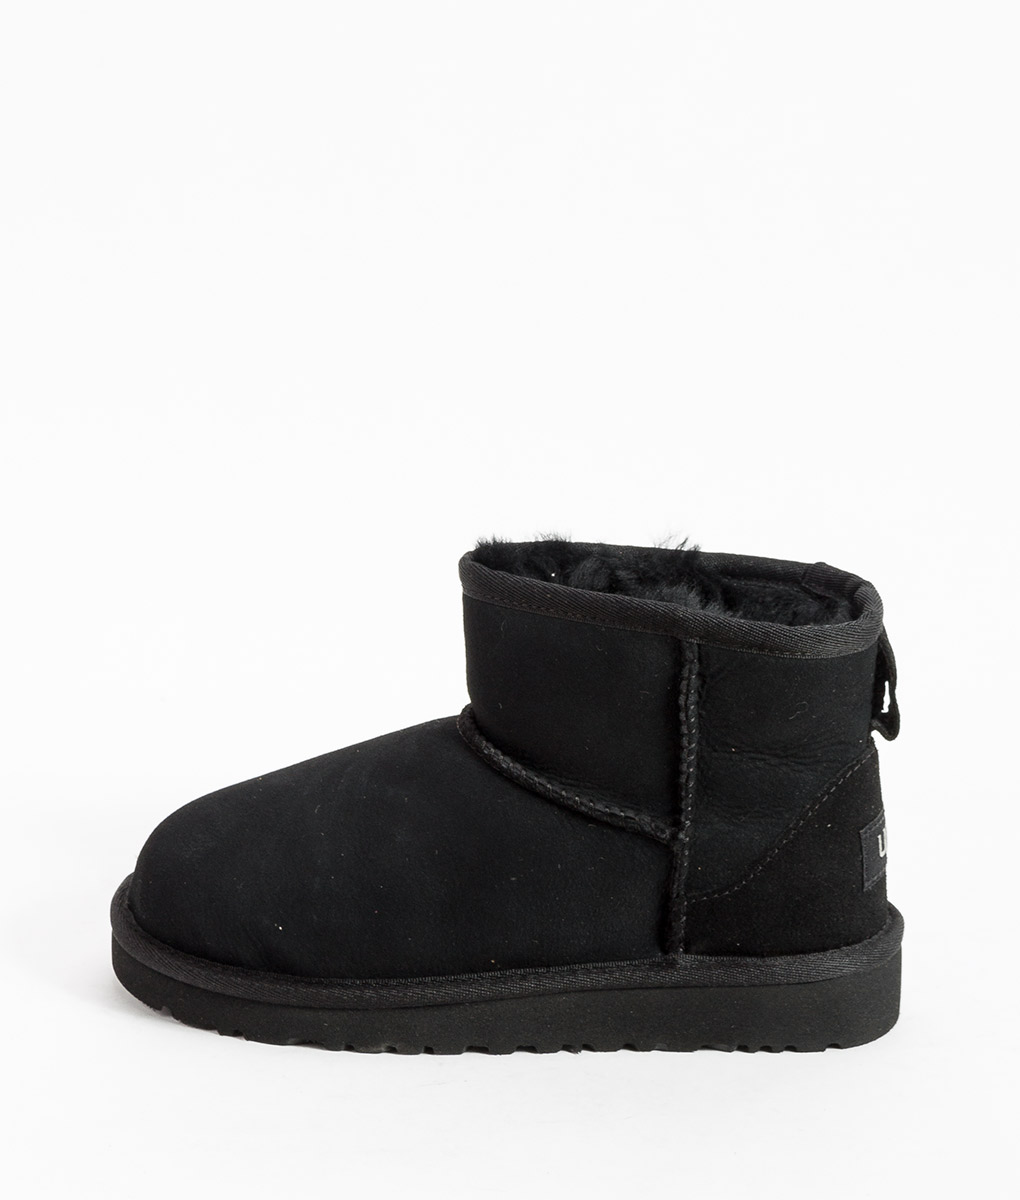 UGG Kids Ankle Boots CLASSIC MINI, Black 194.99